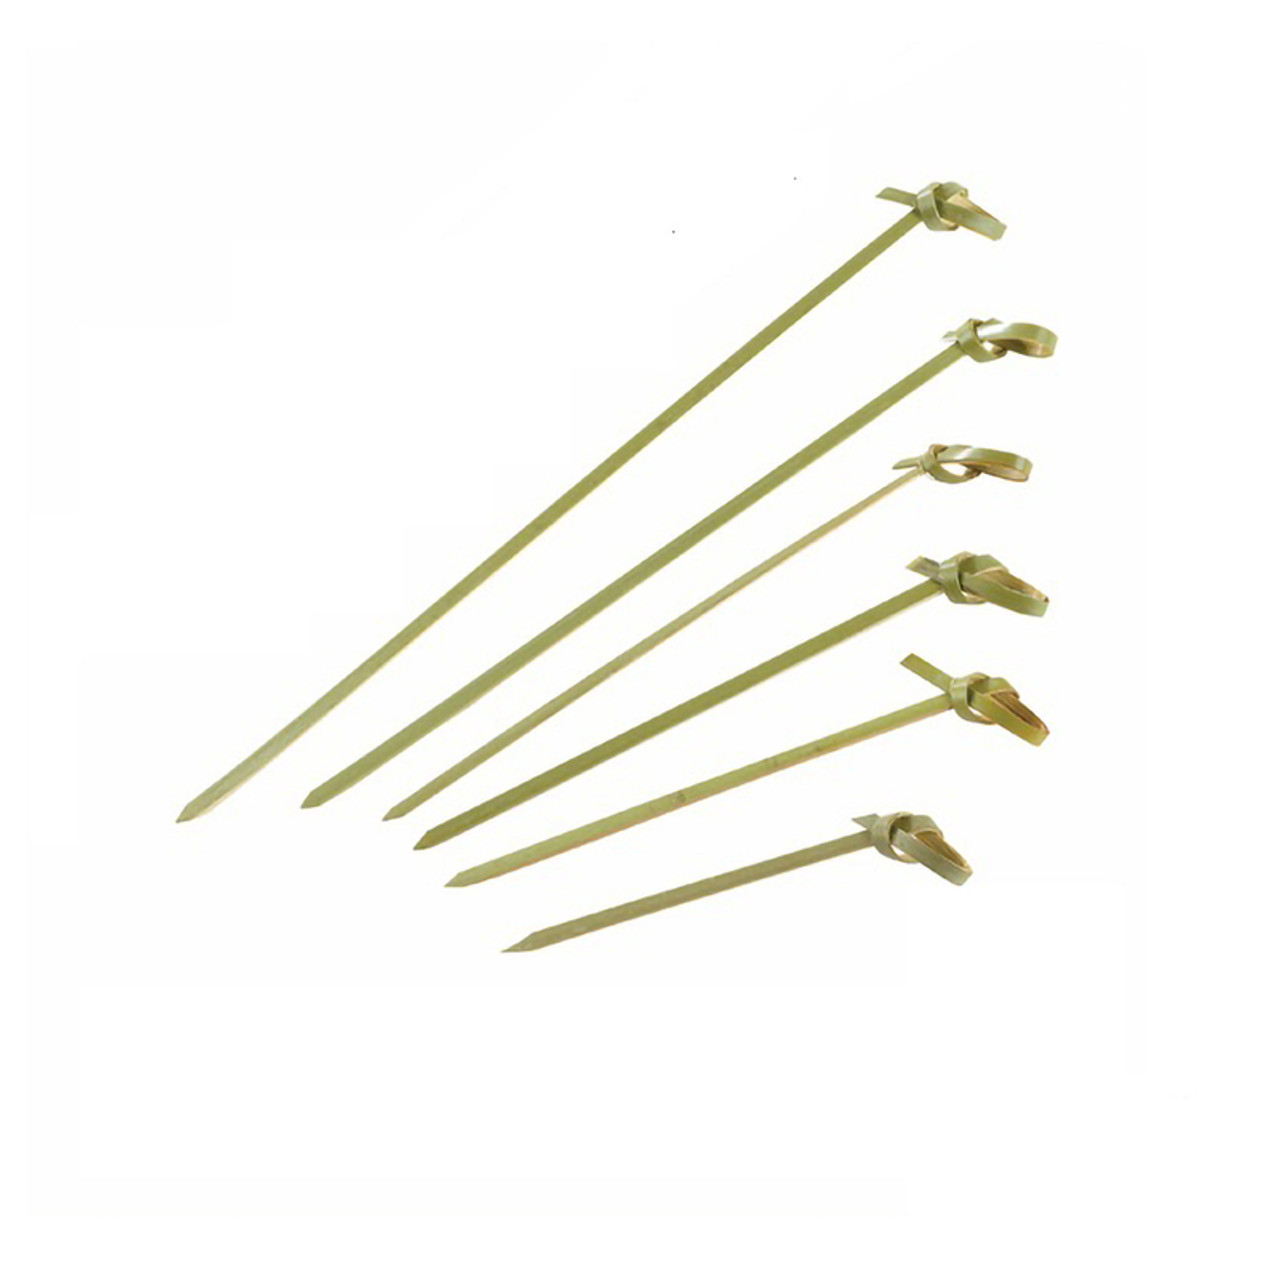 Knotty Bamboo Knotted Skewers - L:4.7in